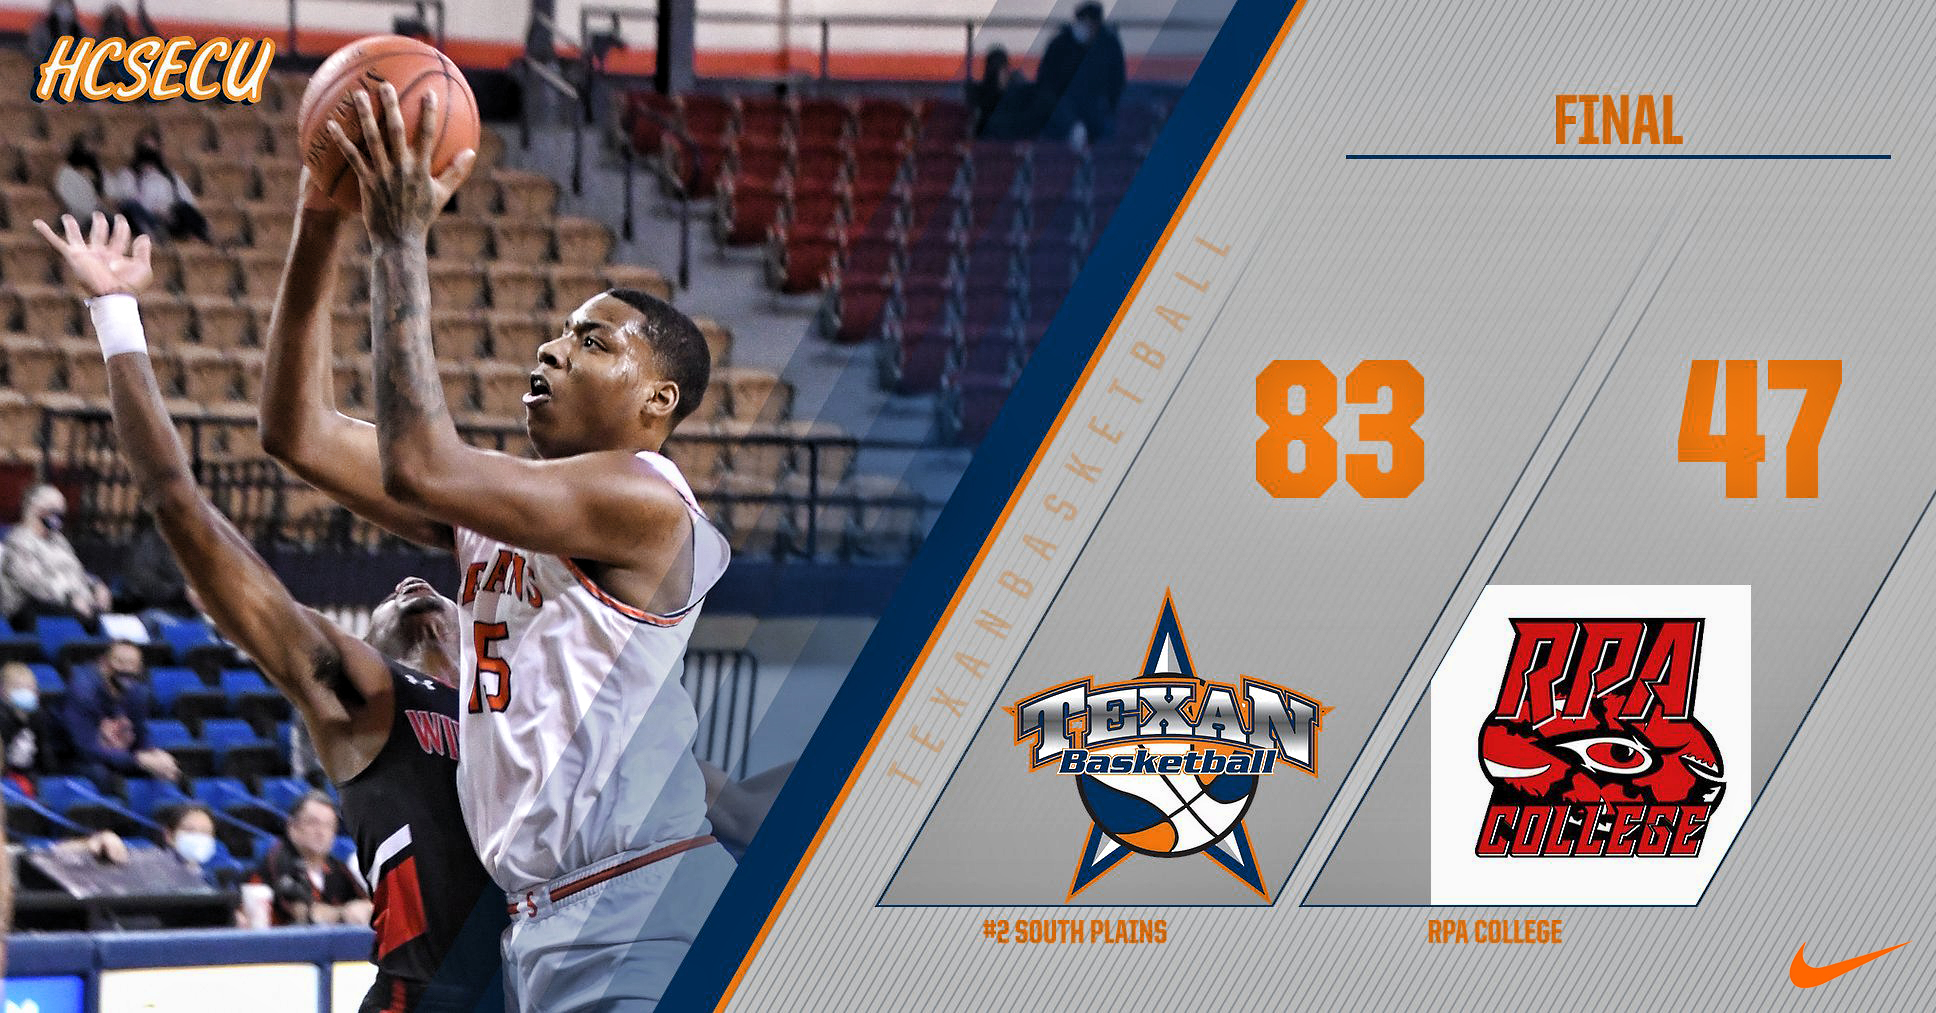 Gardner's double-double leads No. 2 South Plains over RPA College 83-47